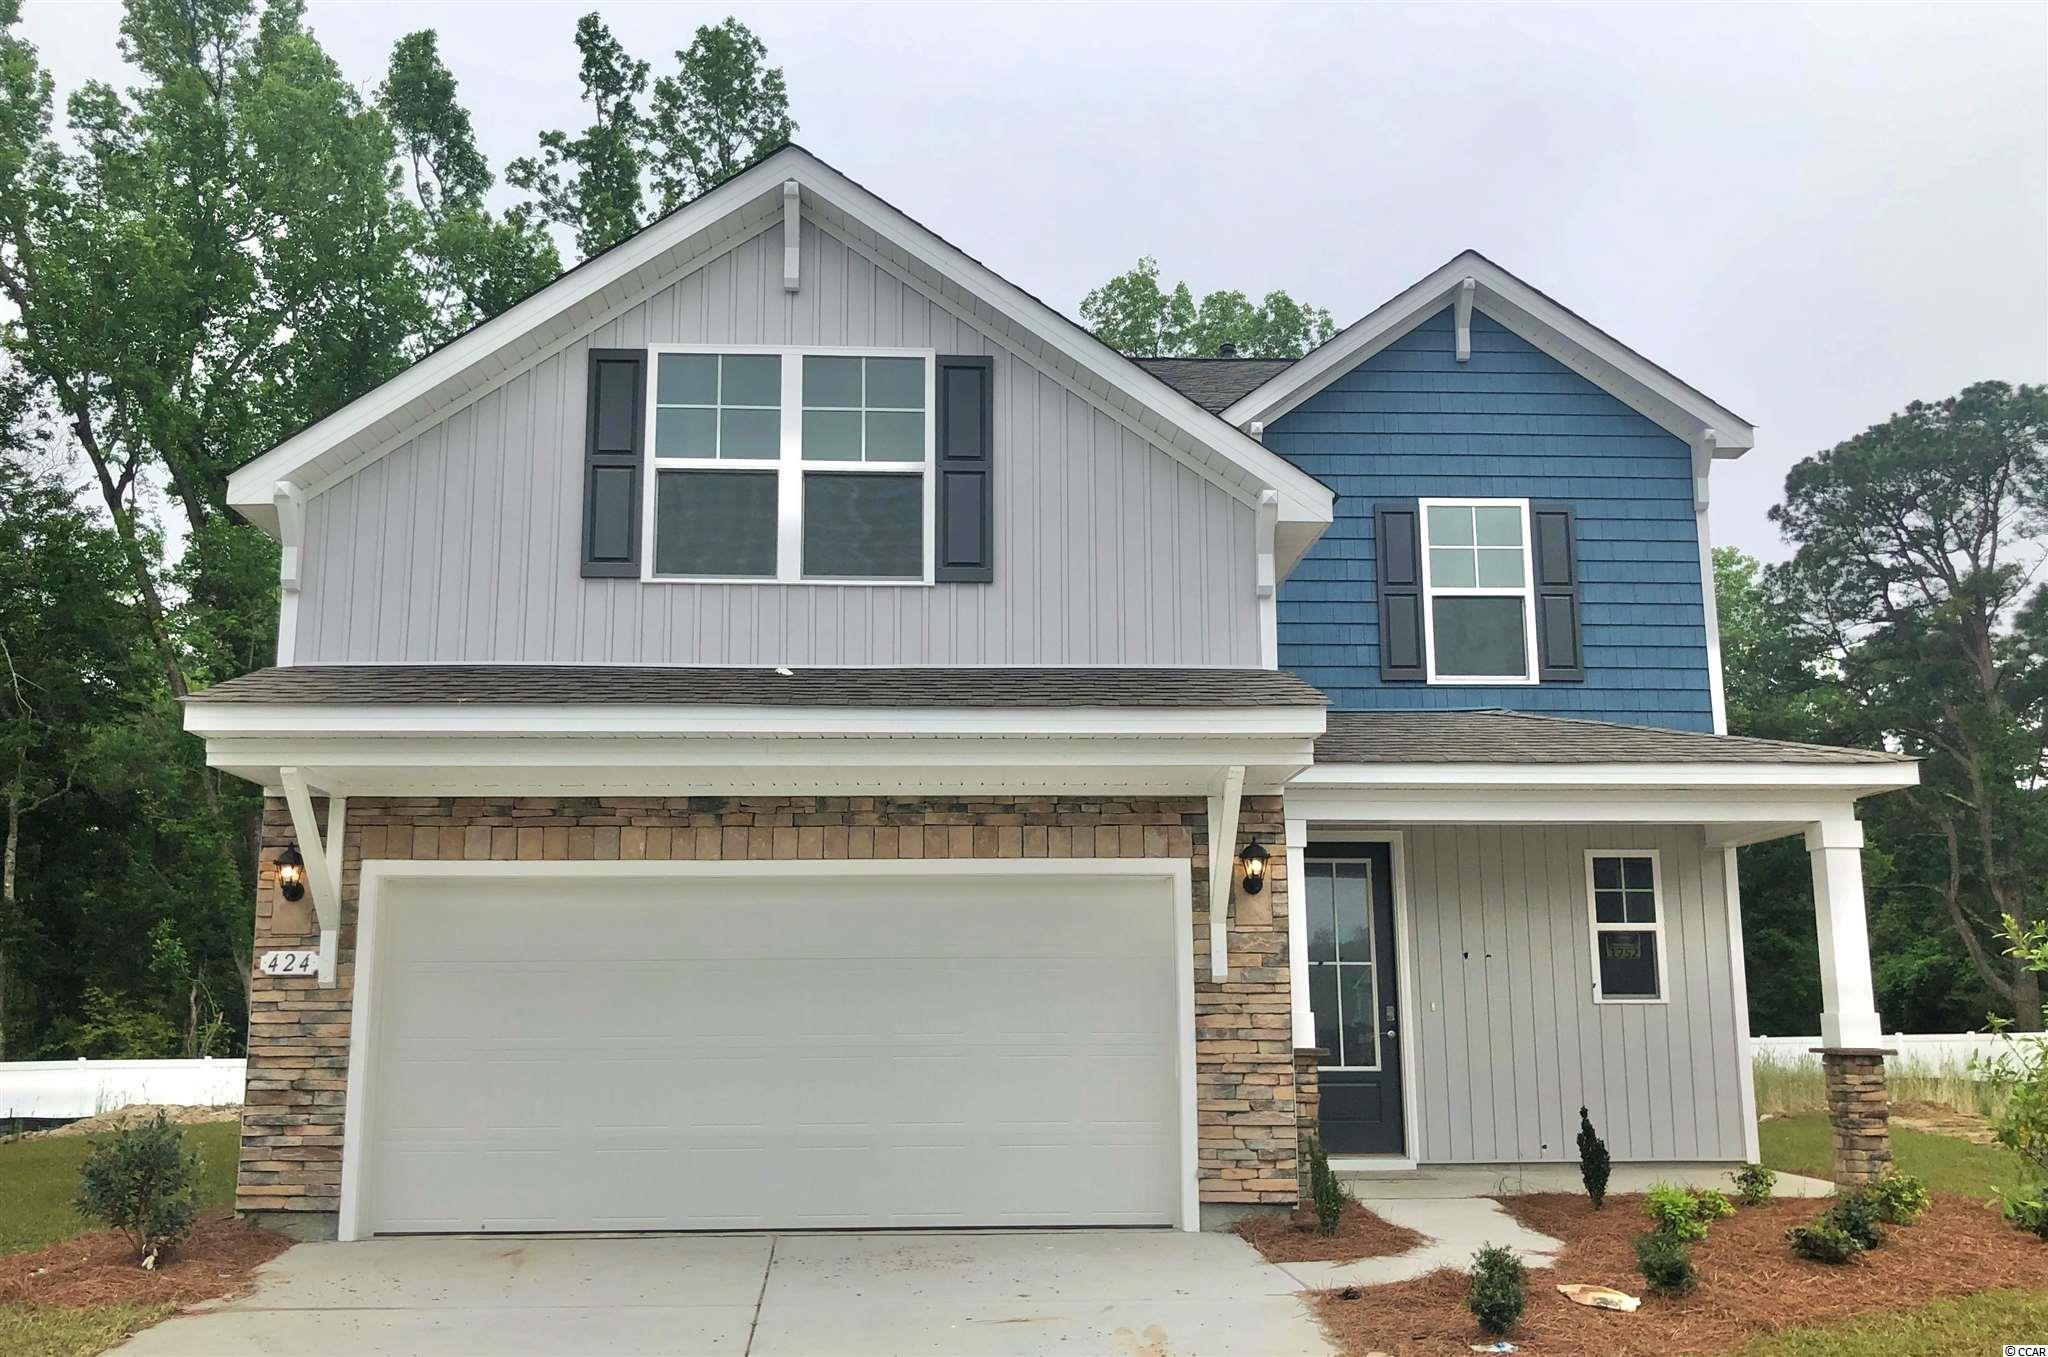 New phase now selling! The Mackenzie is a beautiful two-story home that features a large, open concept living area and kitchen! The kitchen boasts granite countertops, stainless Whirlpool appliances, a large corner pantry, and a working island that is 8' long with a breakfast bar! The downstairs also features a half bath and a sitting bench off the foyer to kick off your flip flops and hang your beach towels. Upstairs is the grand primary bedroom suite and three additional bedrooms. The primary bedroom is oversized with a tray ceiling, sitting area, and en suite bath with a garden tub, separate shower, and two large vanities.  Hidden Brooke is a beautiful community with an amenity that includes a pool with large deck area, clubhouse, and exercise room. Minutes away from Highway 31 which provides quick and easy access to all of the Grand Strand's offerings: dining, entertainment, shopping, and golf! Tranquil setting just a short drive to the beach.   *Photos are of a similar Mackenzie II home.  (Home and community information, including pricing, included features, terms, availability and amenities, are subject to change prior to sale at any time without notice or obligation. Square footages are approximate. Pictures, photographs, colors, features, and sizes are for illustration purposes only and will vary from the homes as built. Equal housing opportunity builder.)